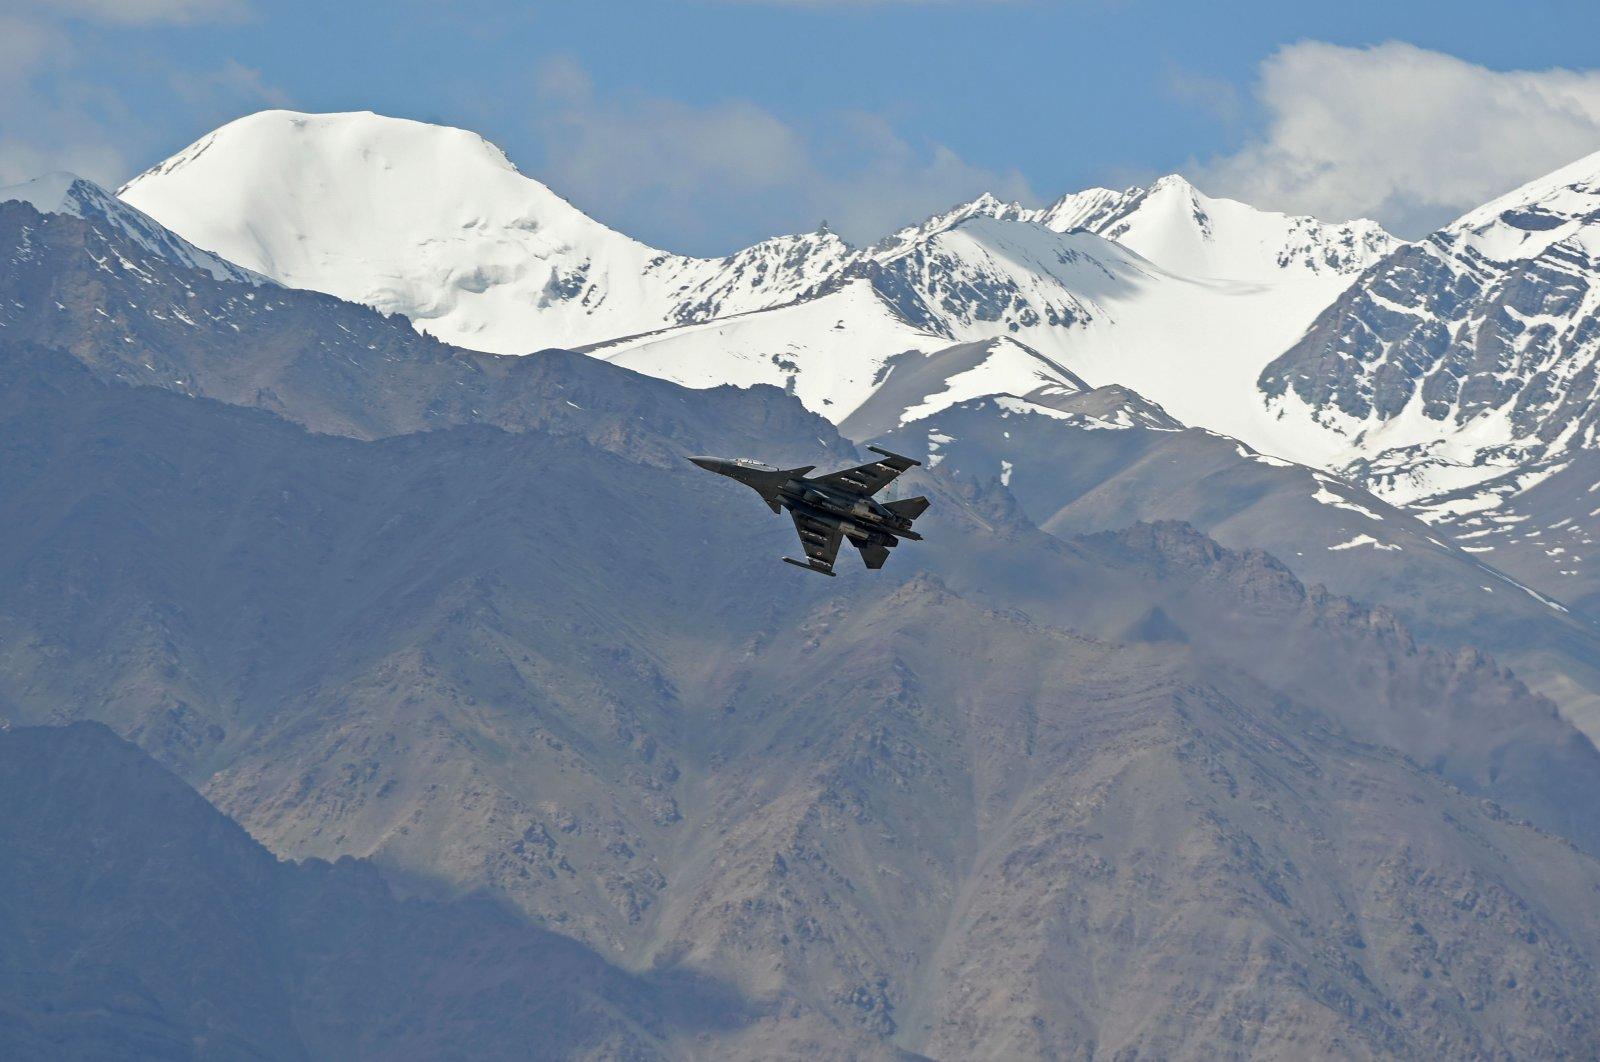 An Indian fighter jet flies over Leh, the joint capital of the union territory of Ladakh, on June 26, 2020. (AFP Photo)